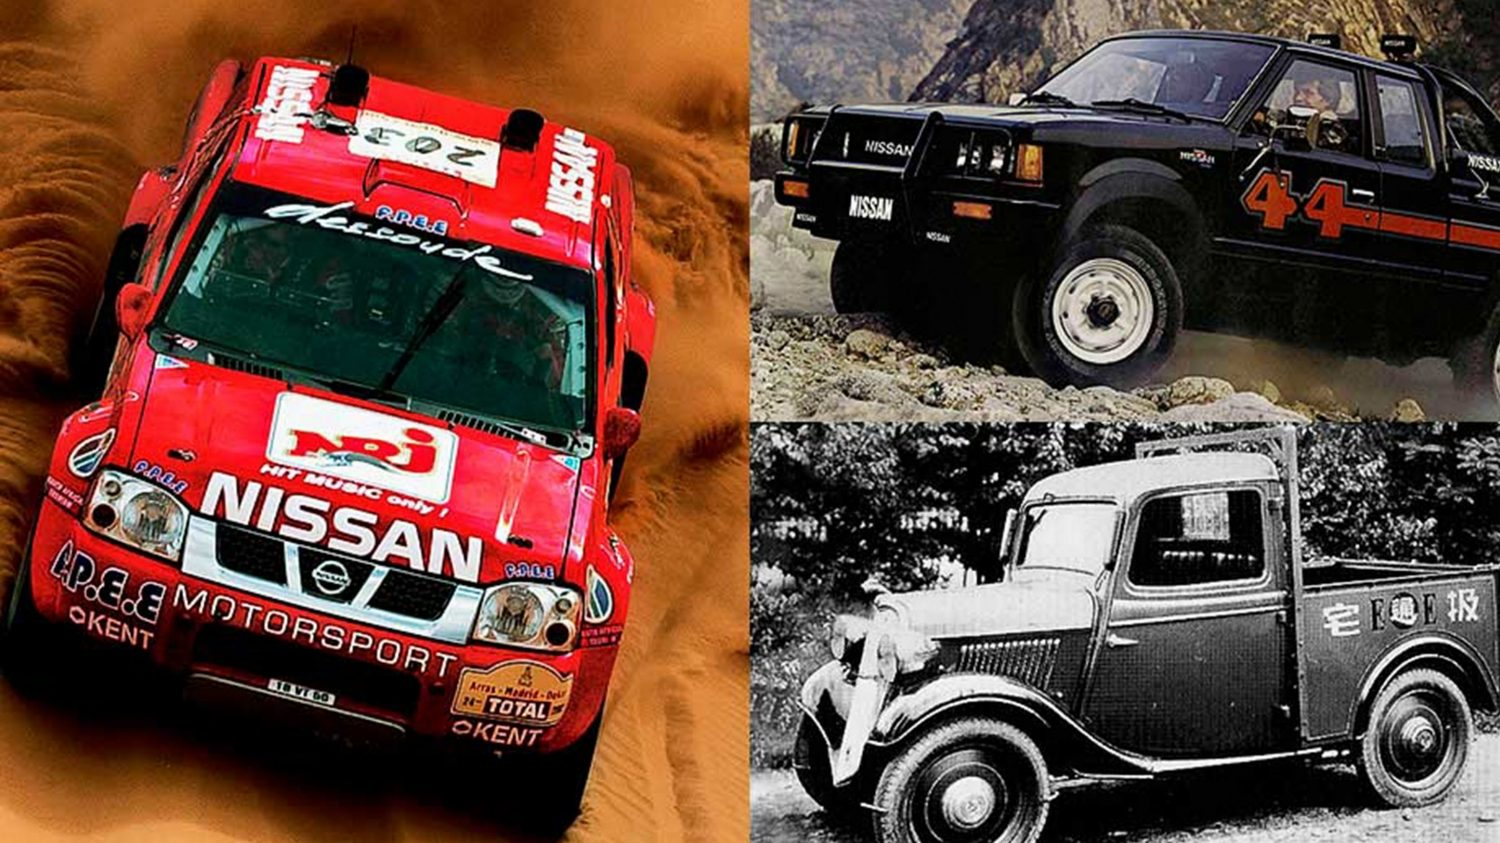 Nissan Navara heritage shots of older generation models